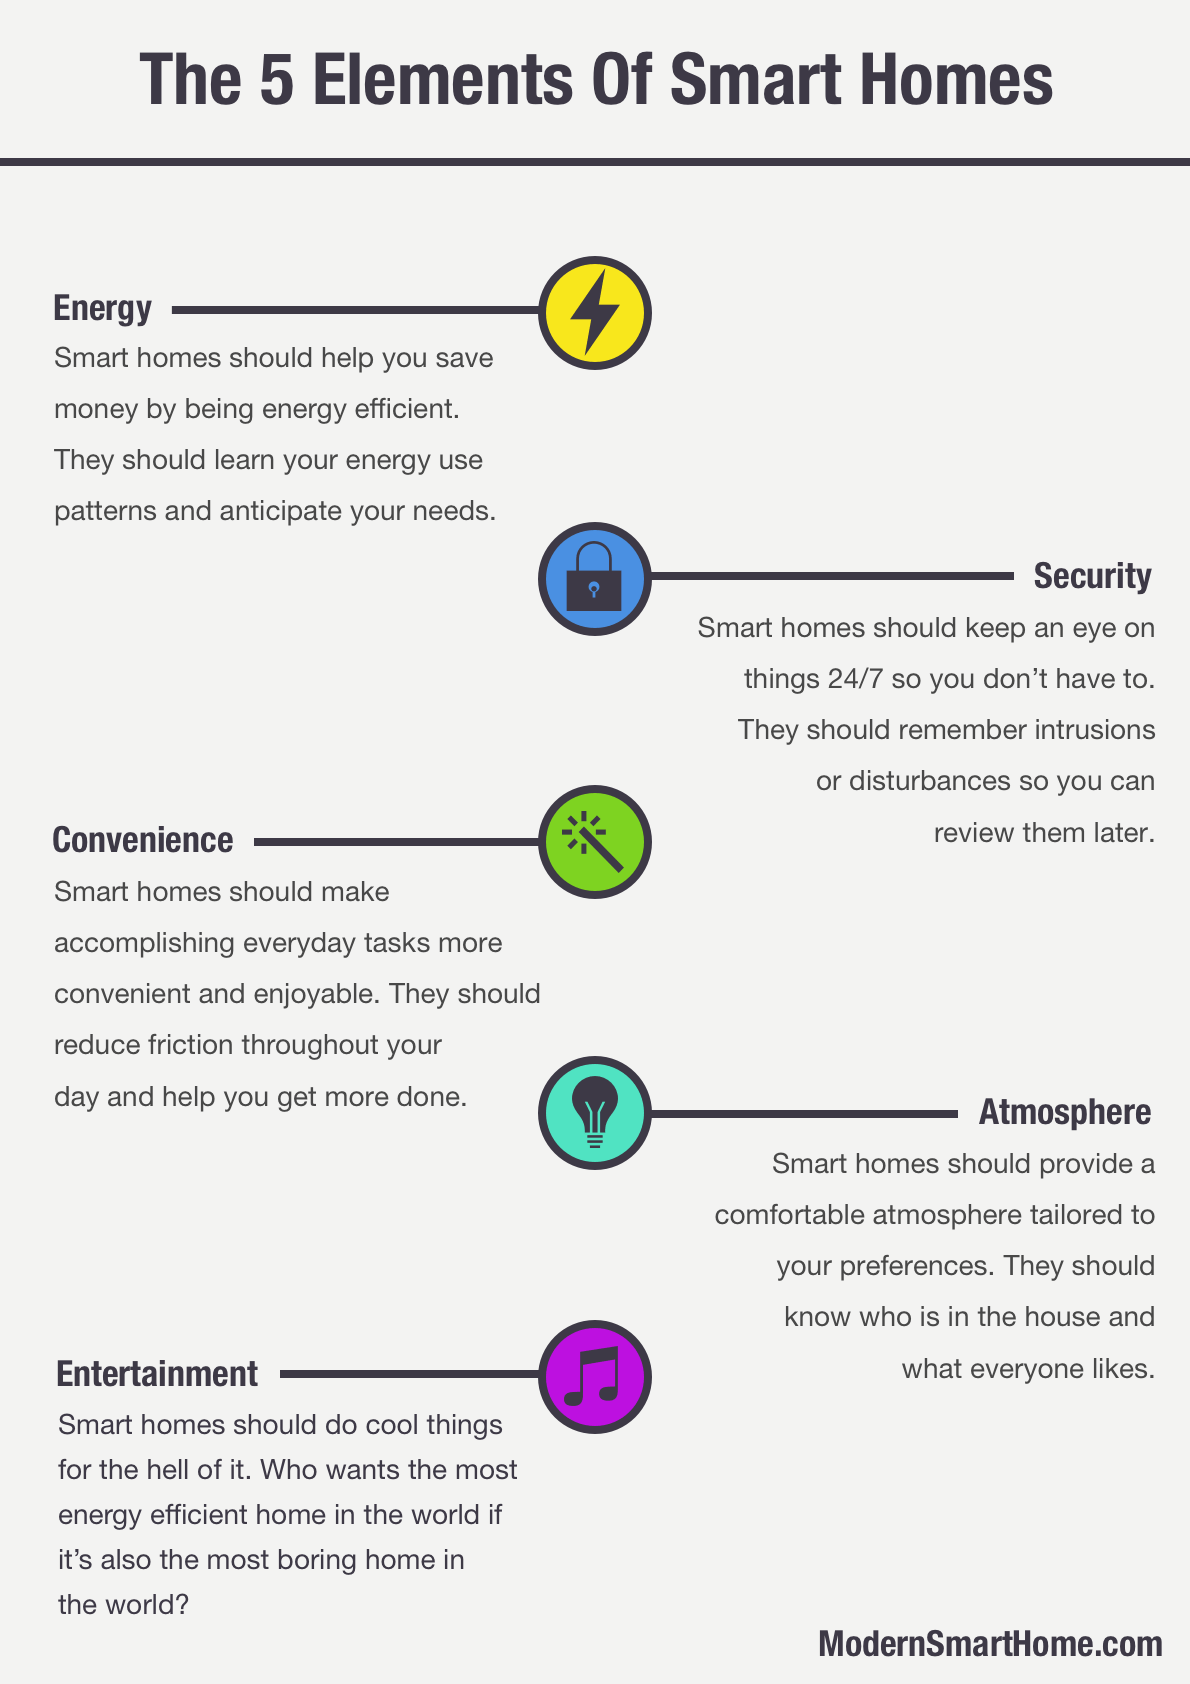 The 5 Elements Of Smart Homes Infographic